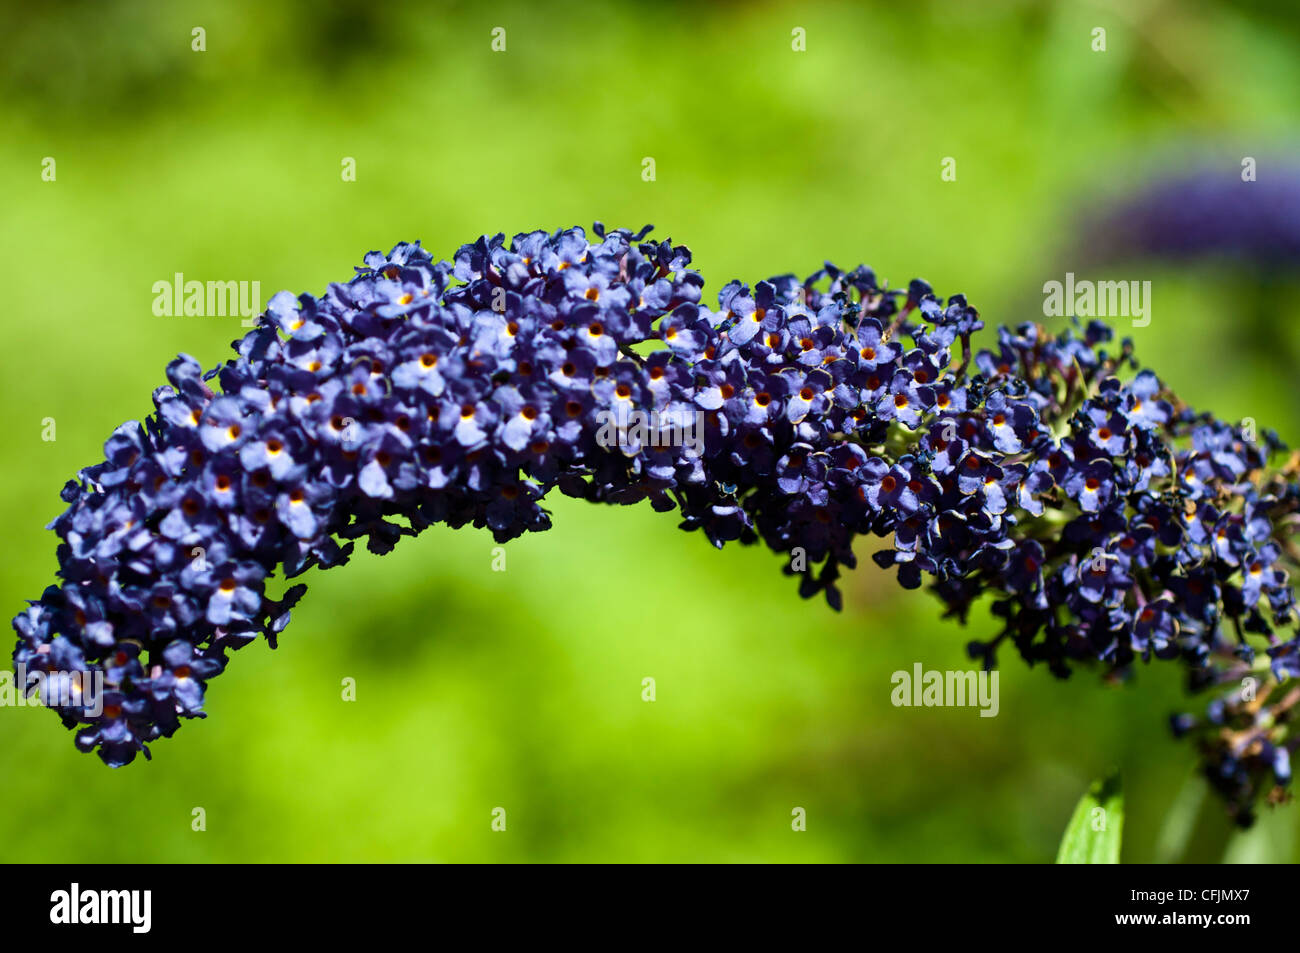 Purple violet flowers of Butterfly Bush, Buddleia Davidii with green dissolved background - Stock Image